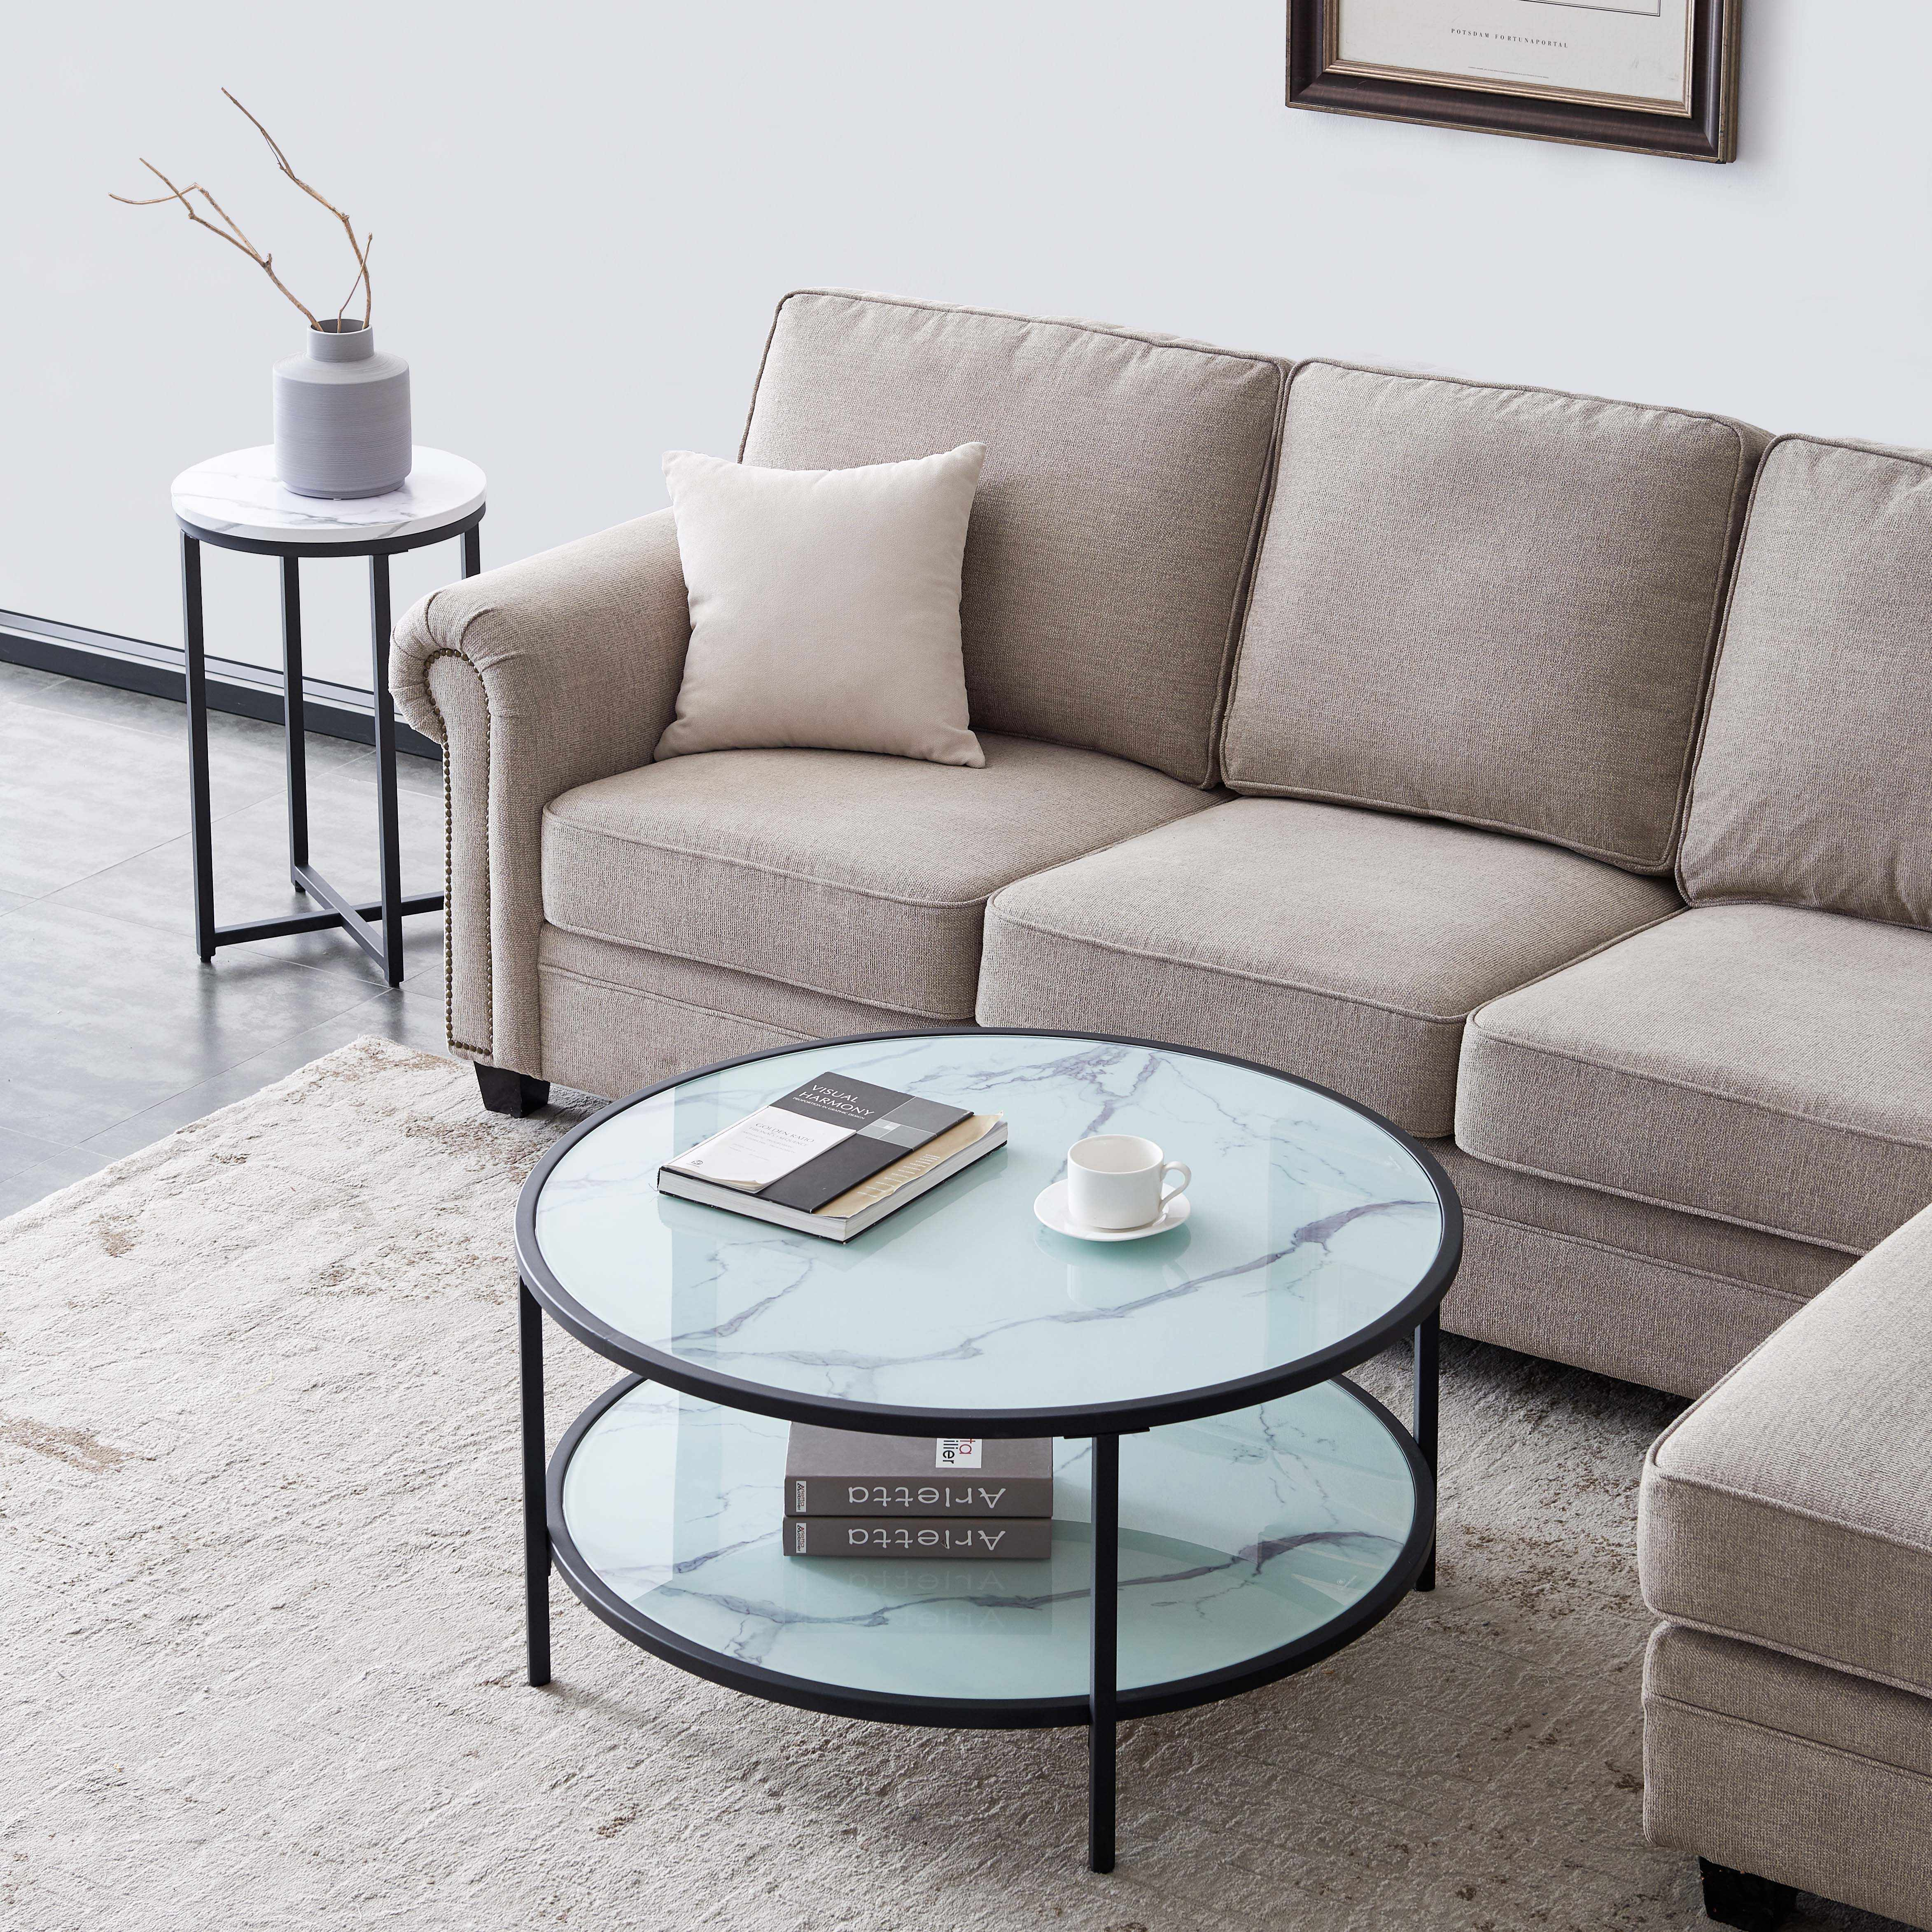 glass coffee side table marble pattern round with large storage space for living room 85 85 45cm modern simplicity us stock cafe tables aliexpress